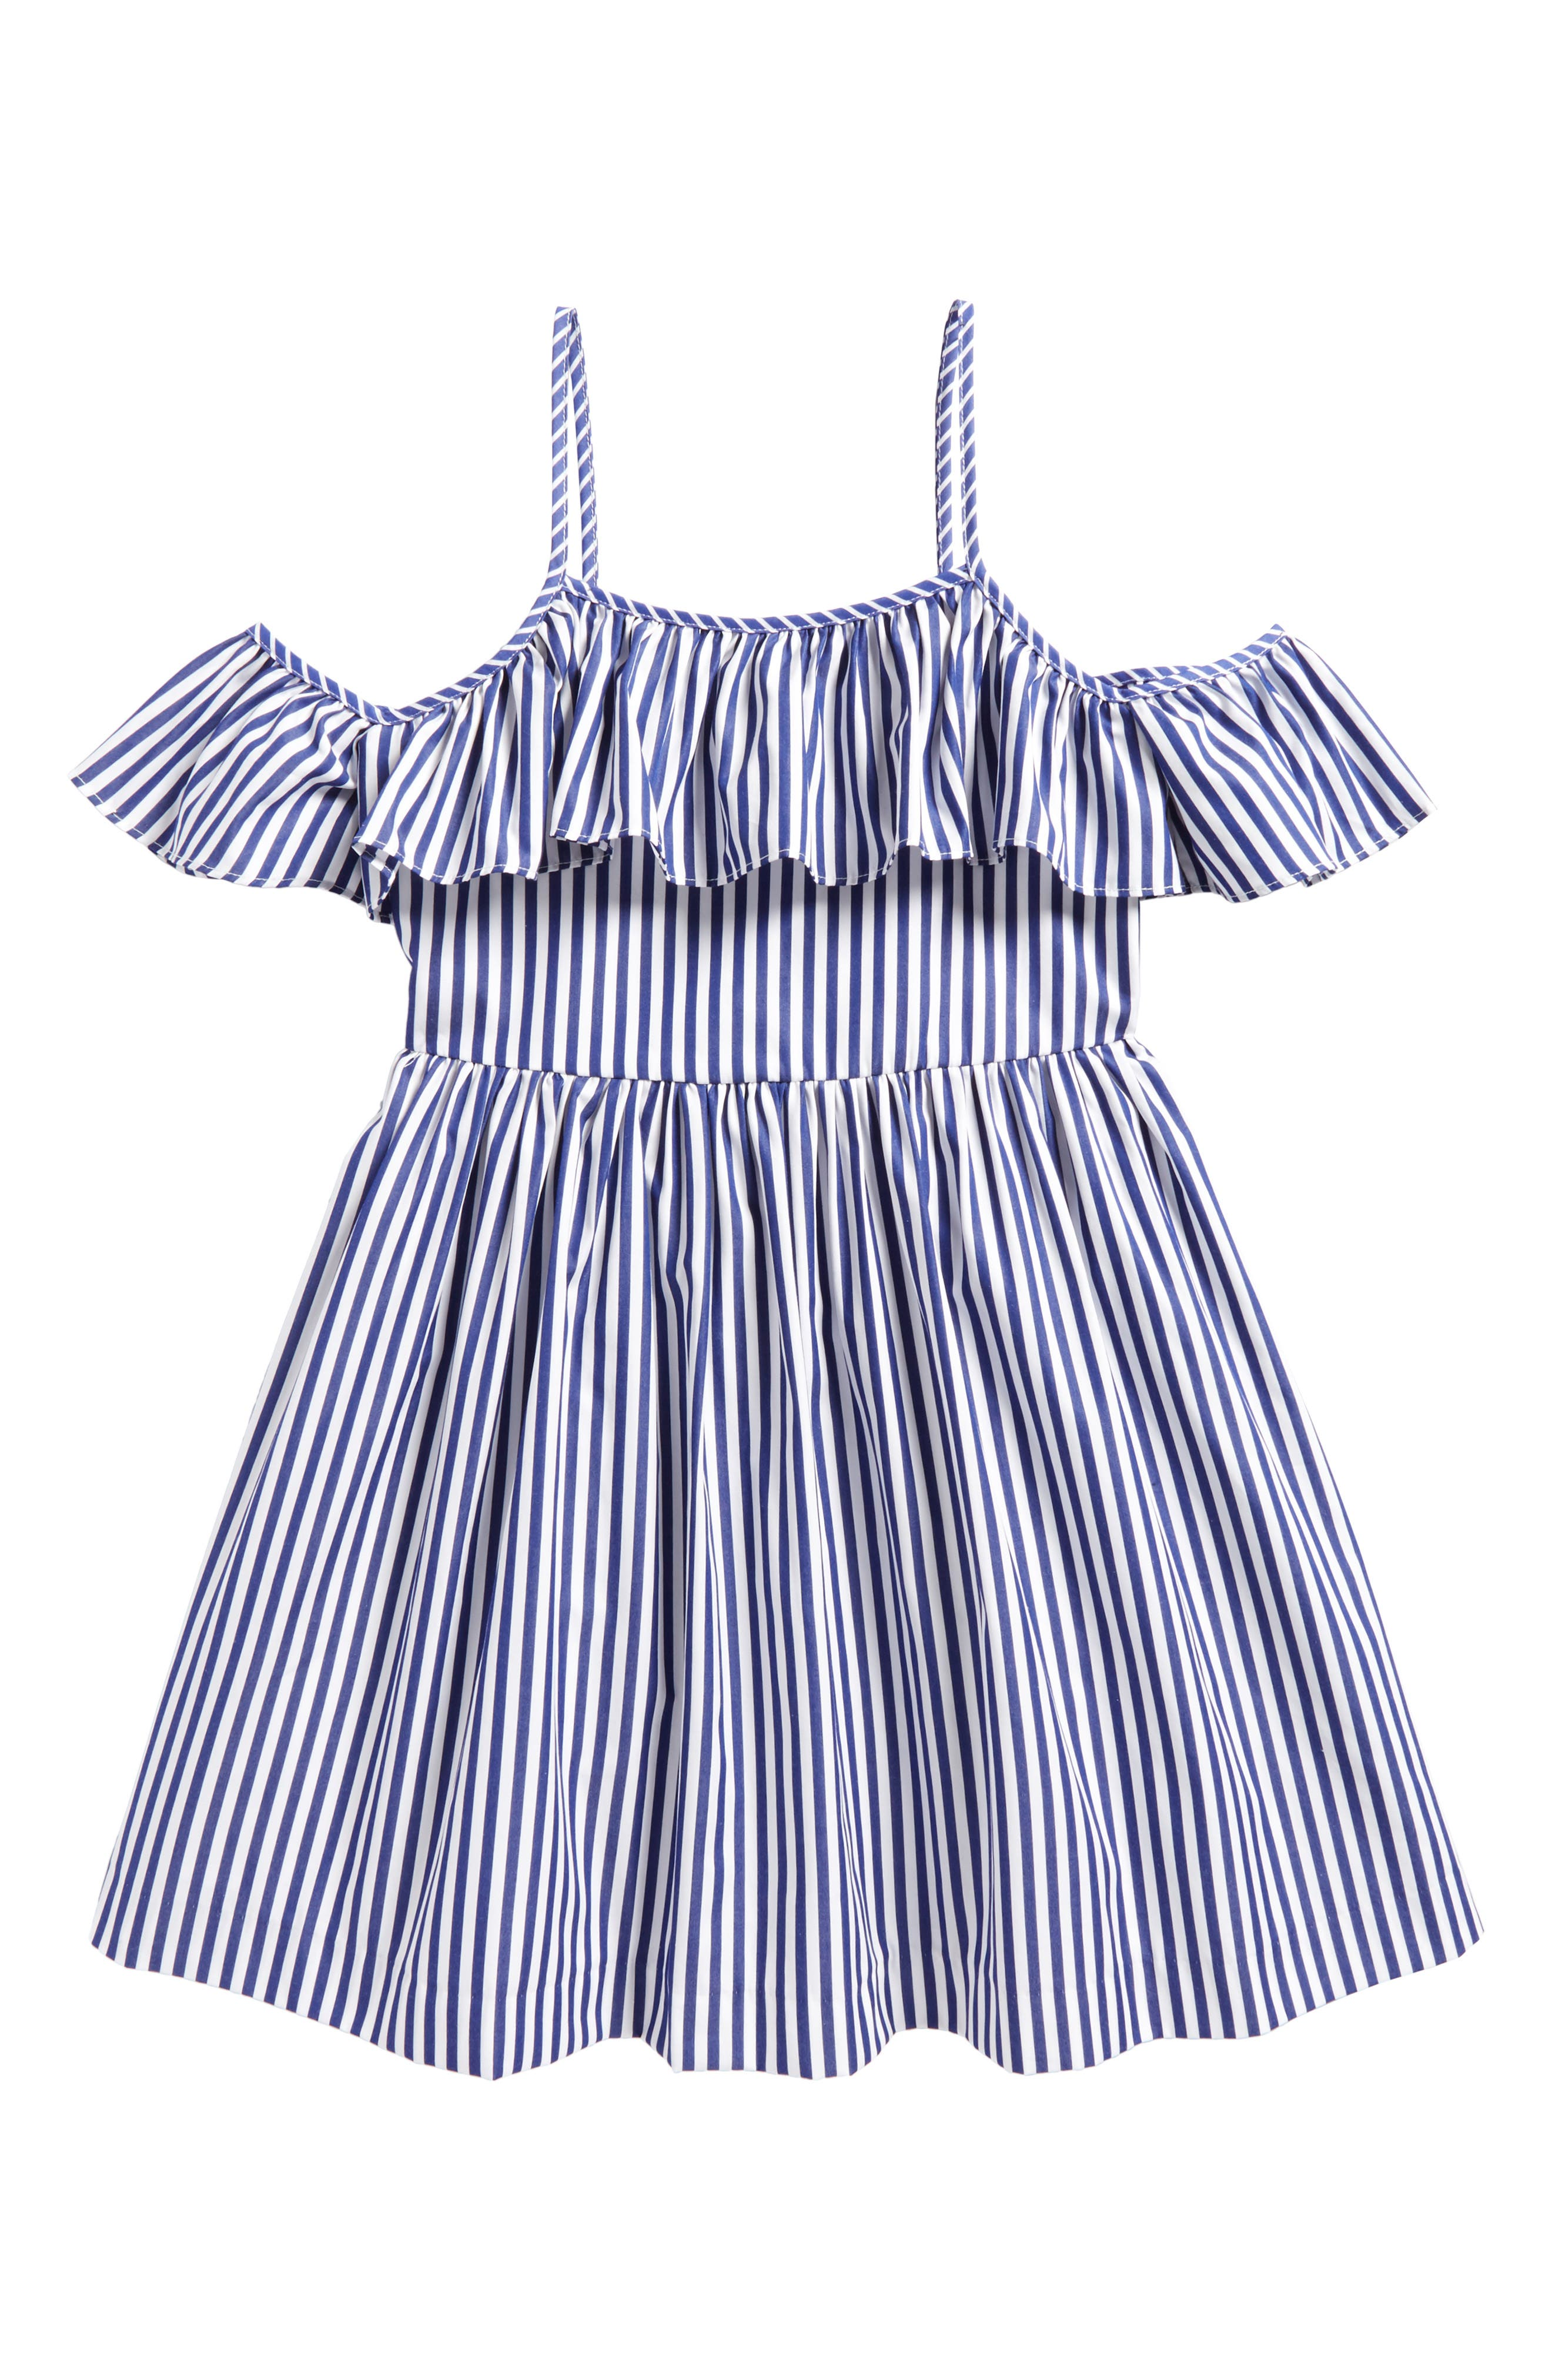 Alternate Image 1 Selected - Milly Minis Bella Dress (Big Girls)